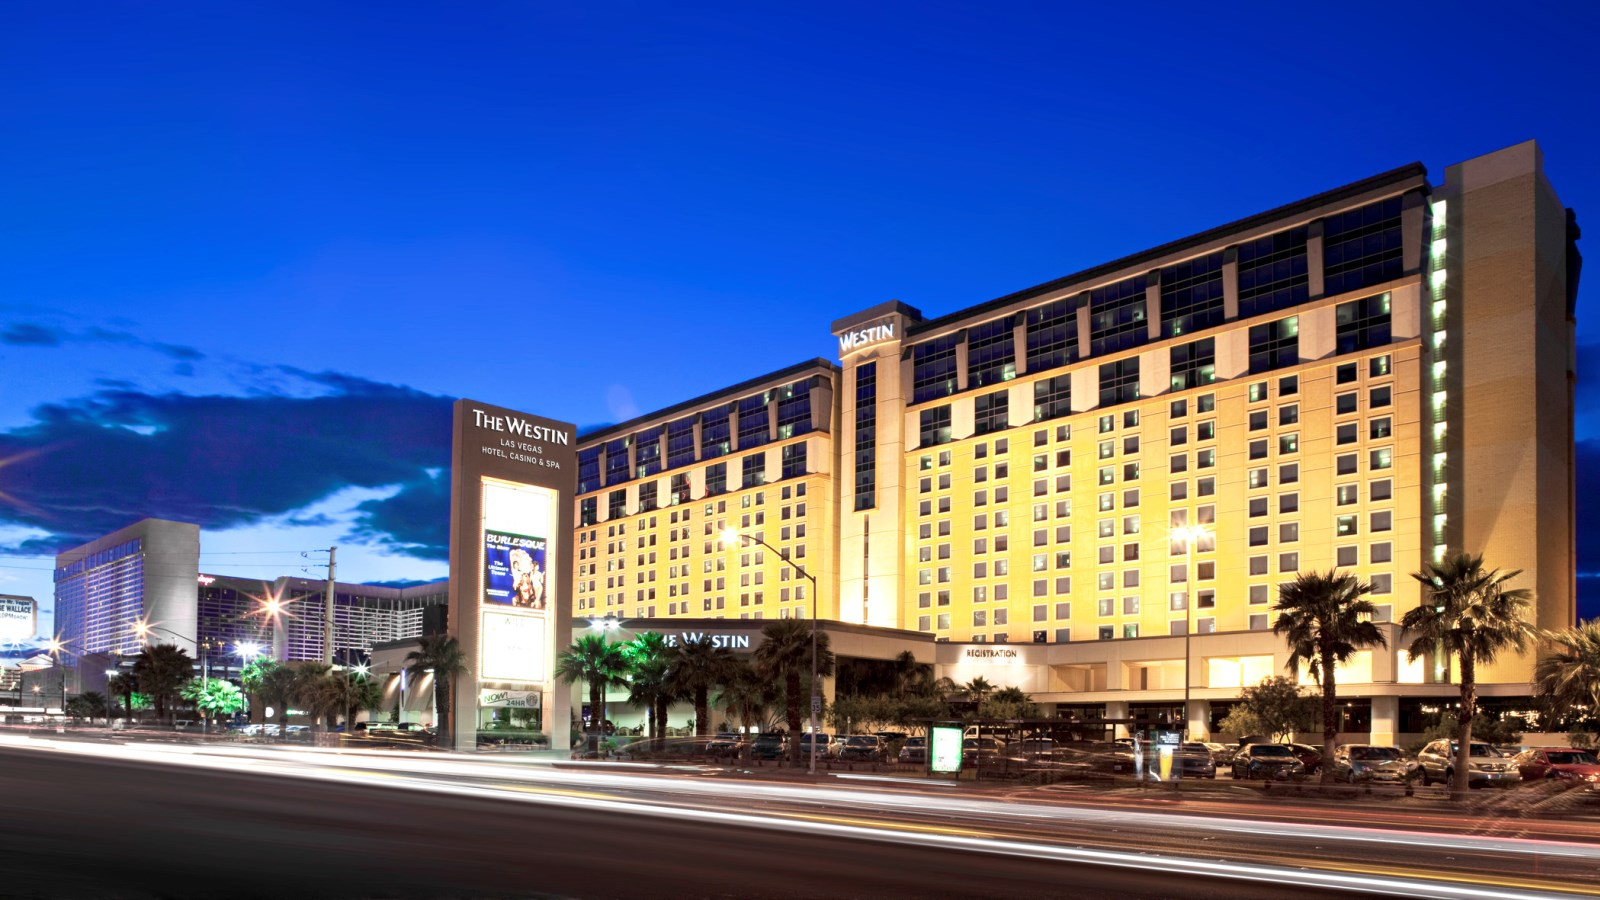 5 Top San Francisco Hotels Using Marriott & Starwood Points; Las Vegas Marriott and Starwood Hotels With Points. Link: Marriott Hotels in Las Vegas. Link: Starwood Hotels in Las Vegas. You can redeem Marriott, Ritz-Carlton, or Starwood points for award nights at all 3 hotel chains. Keep in mind, there are no Ritz-Carlton hotels in Las Vegas.